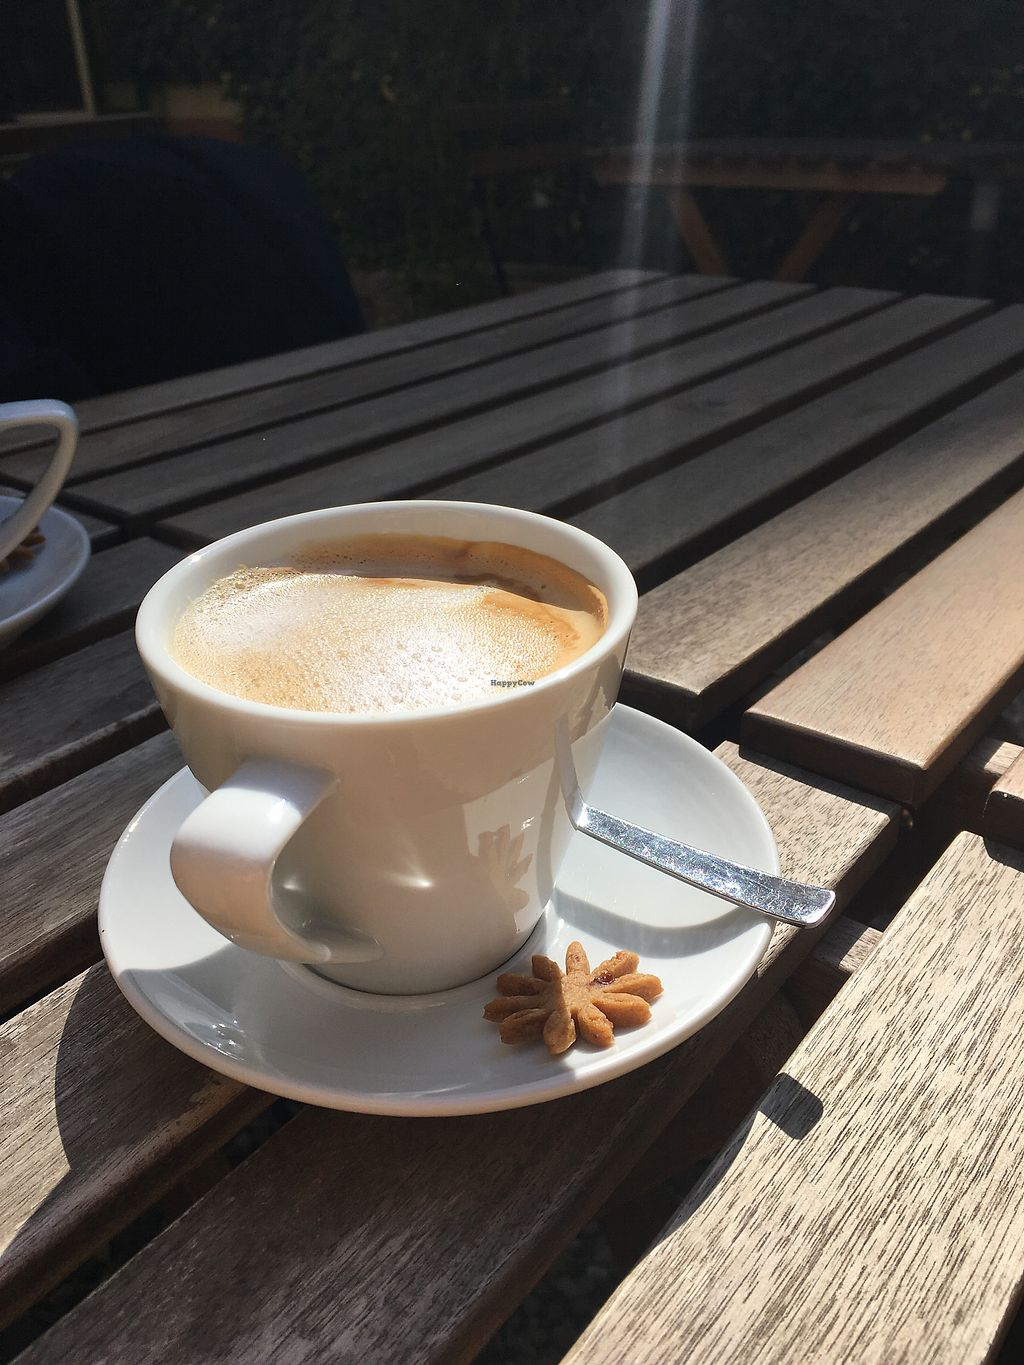 """Photo of PappaGioia  by <a href=""""/members/profile/suzyseraphina"""">suzyseraphina</a> <br/>Coffee in the sunshine <br/> March 25, 2018  - <a href='/contact/abuse/image/99034/375748'>Report</a>"""